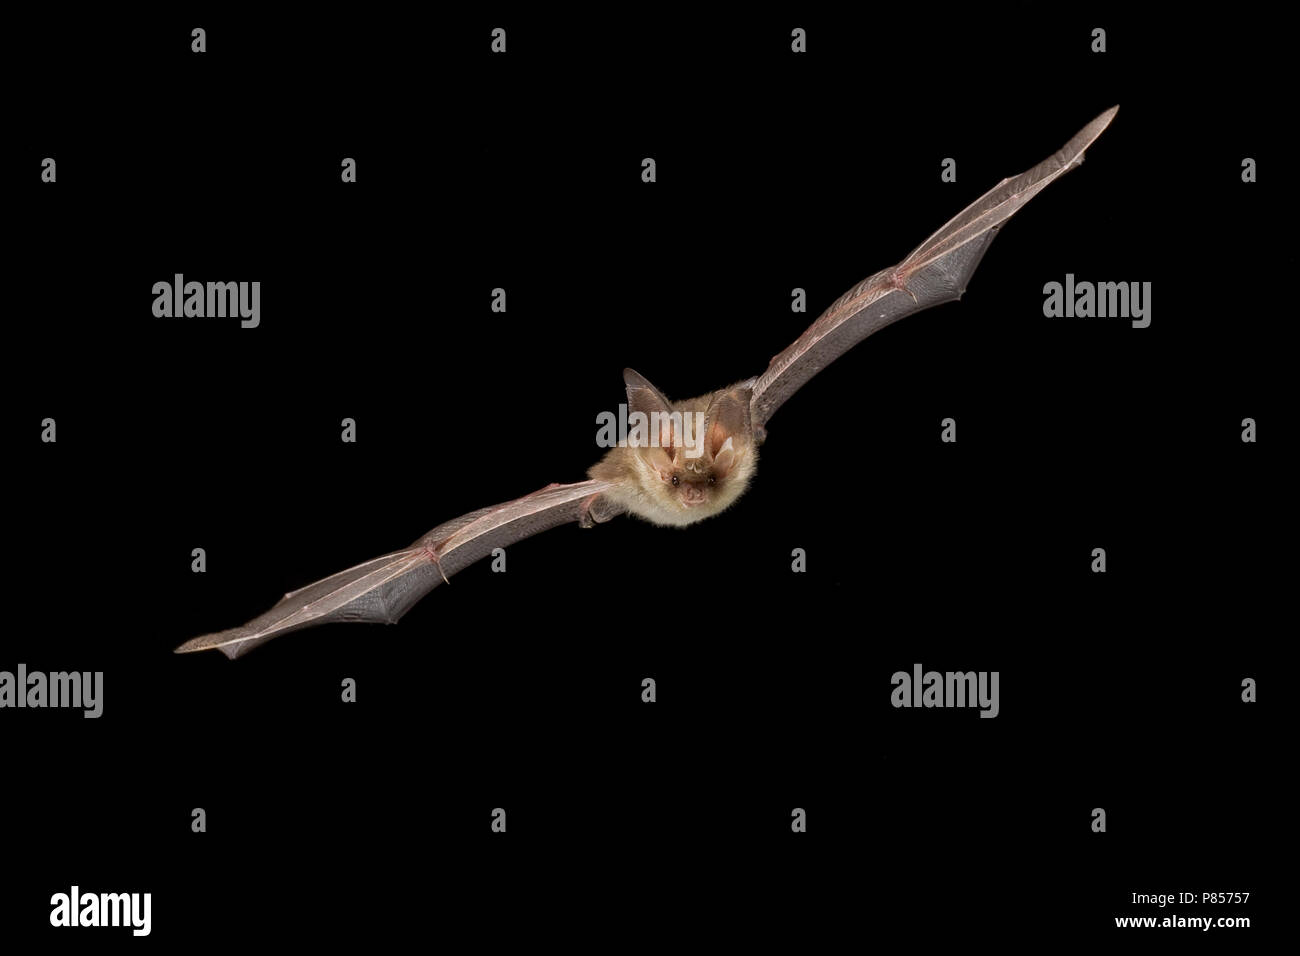 Gewone grootoorvleermuis vliegend; Brown long-eared bat flying - Stock Image